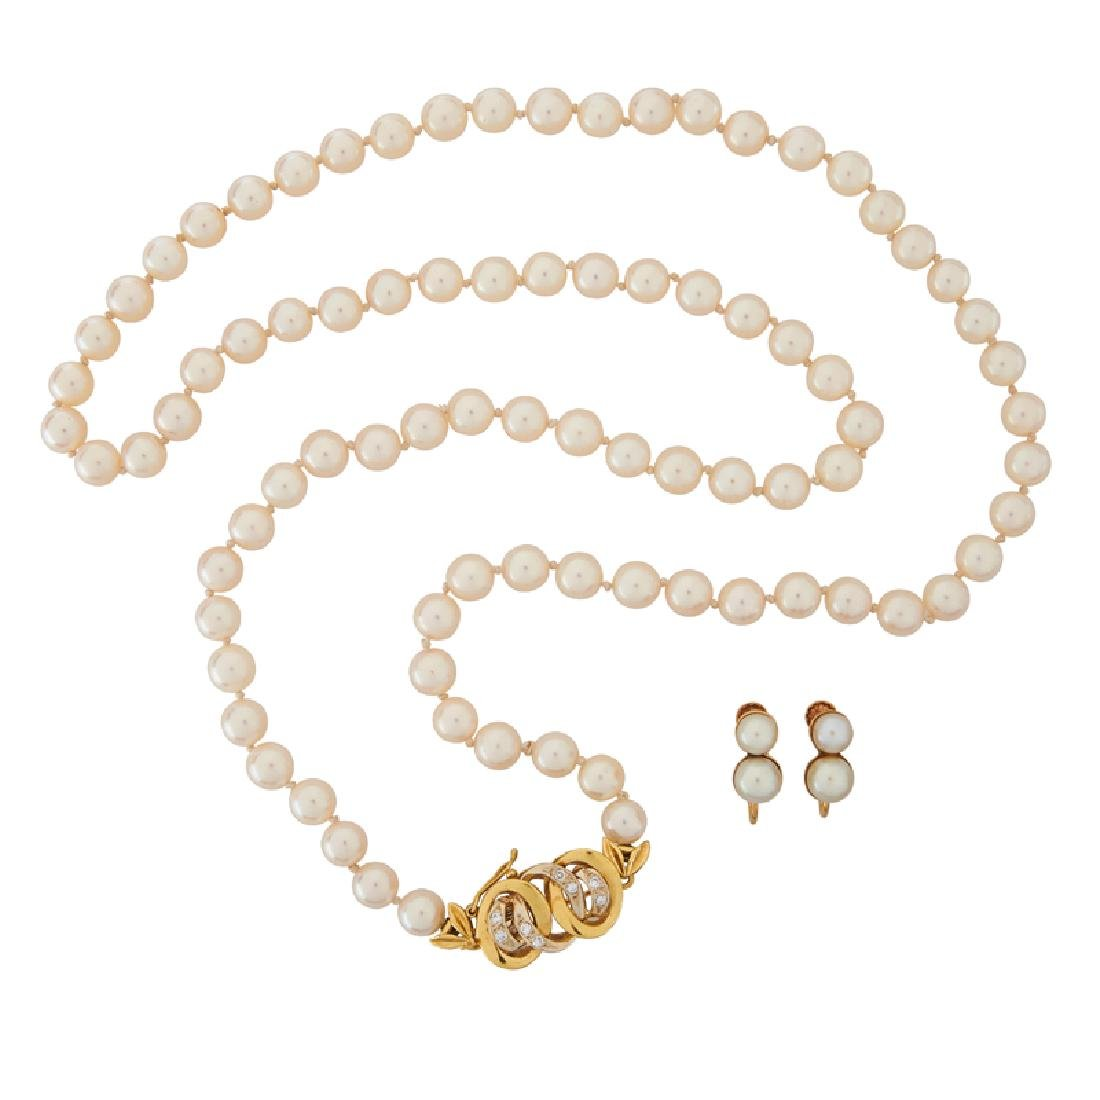 AKOYA PEARL & GOLD NECKLACE & EARRINGS, INCL. DIAMONDS